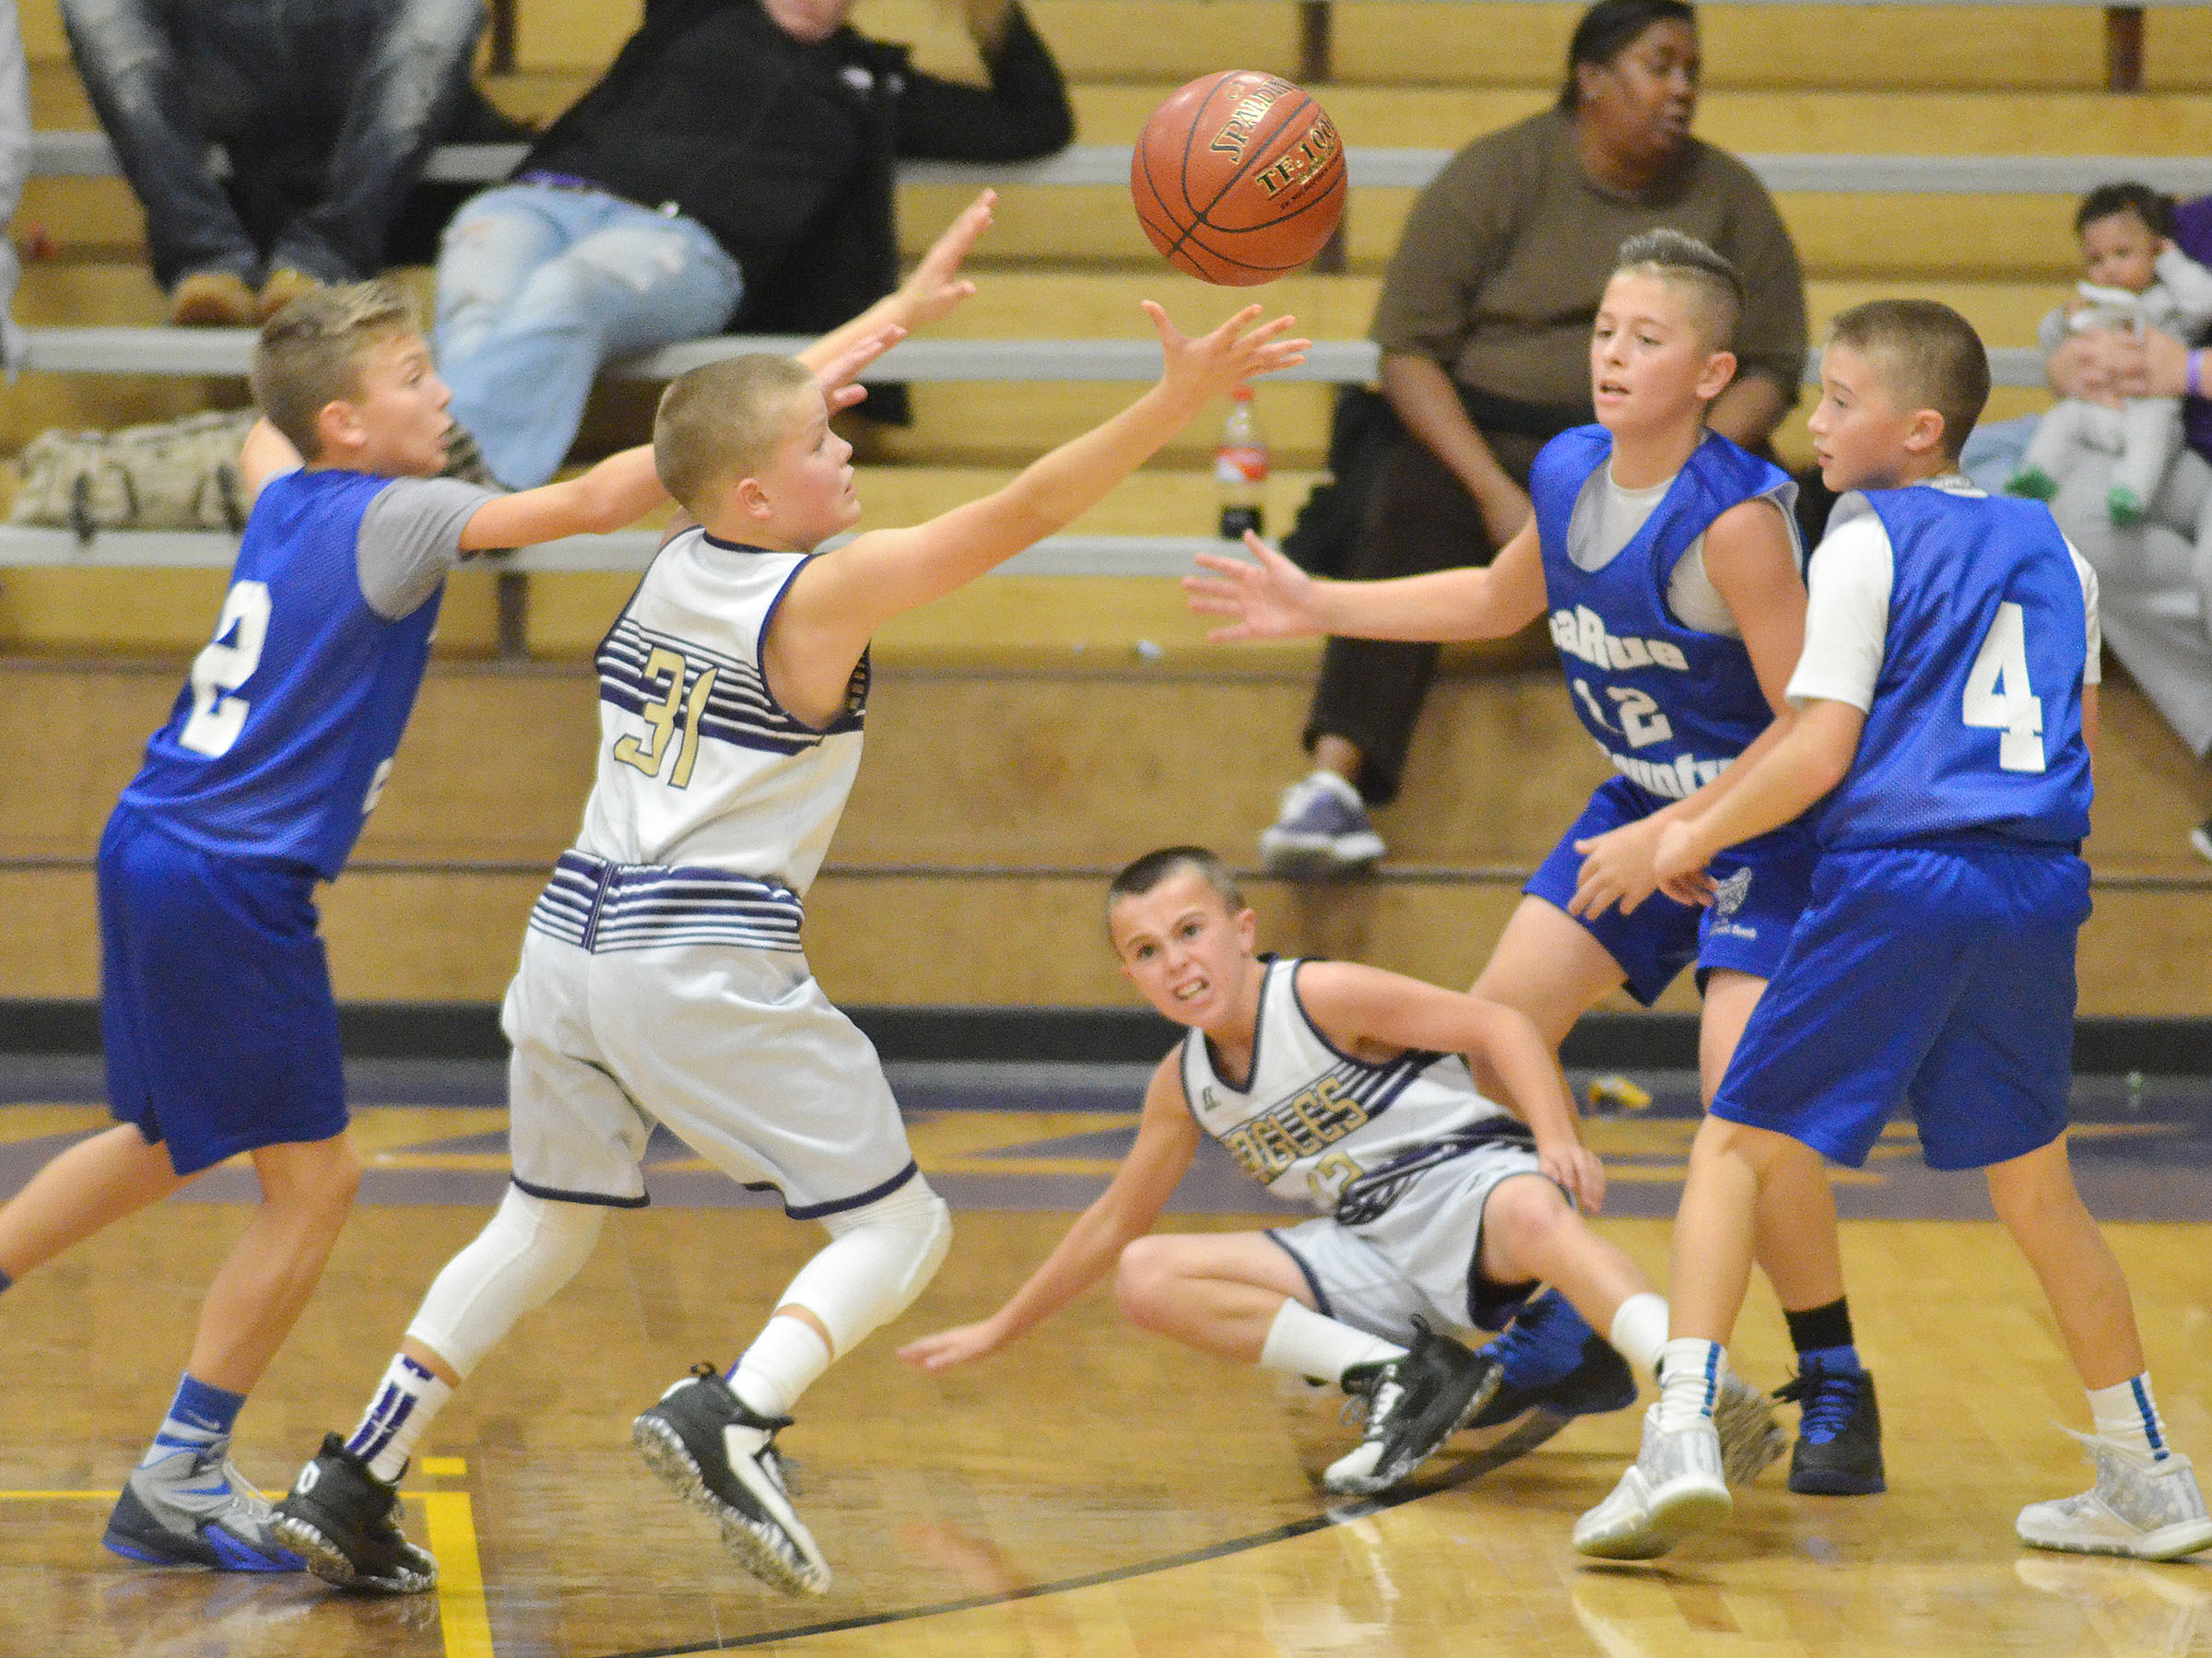 CMS sixth-grader Konner Forbis fights for the ball.